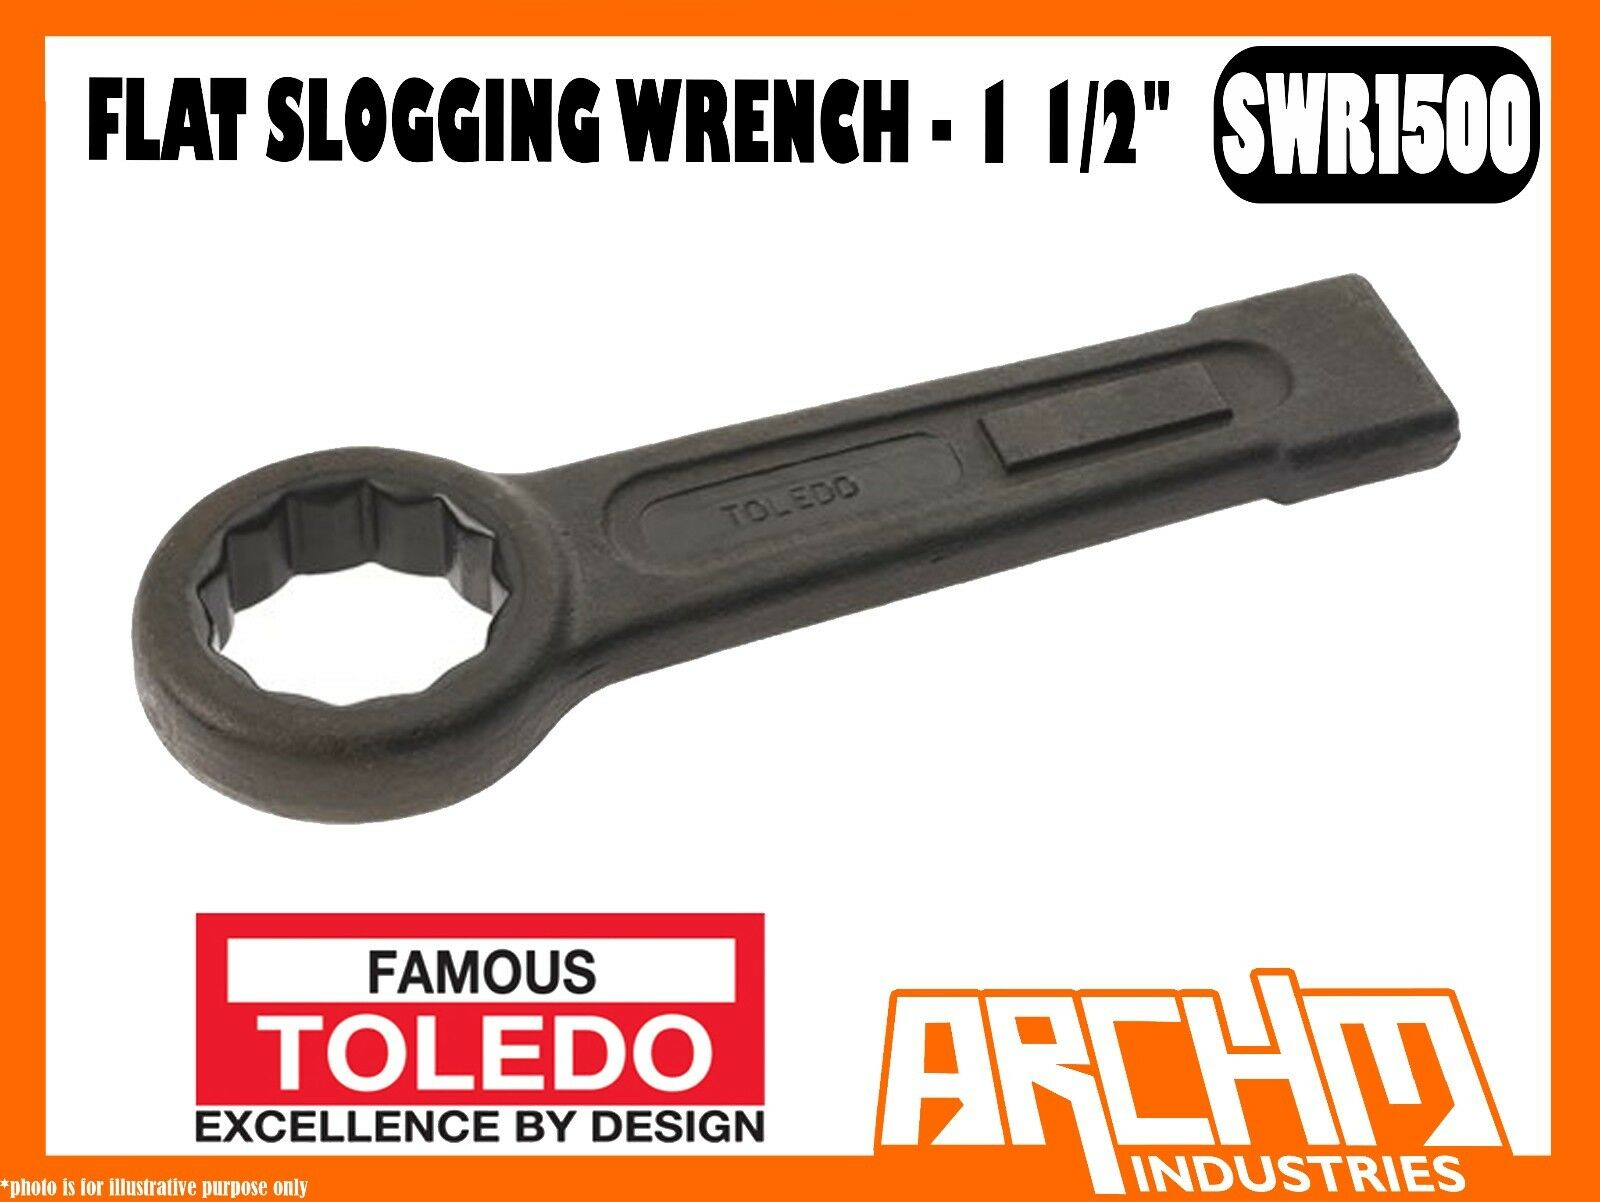 TOLEDO SWR1500 - FLAT SLOGGING WRENCH - 1 1 2  - IMPERIAL